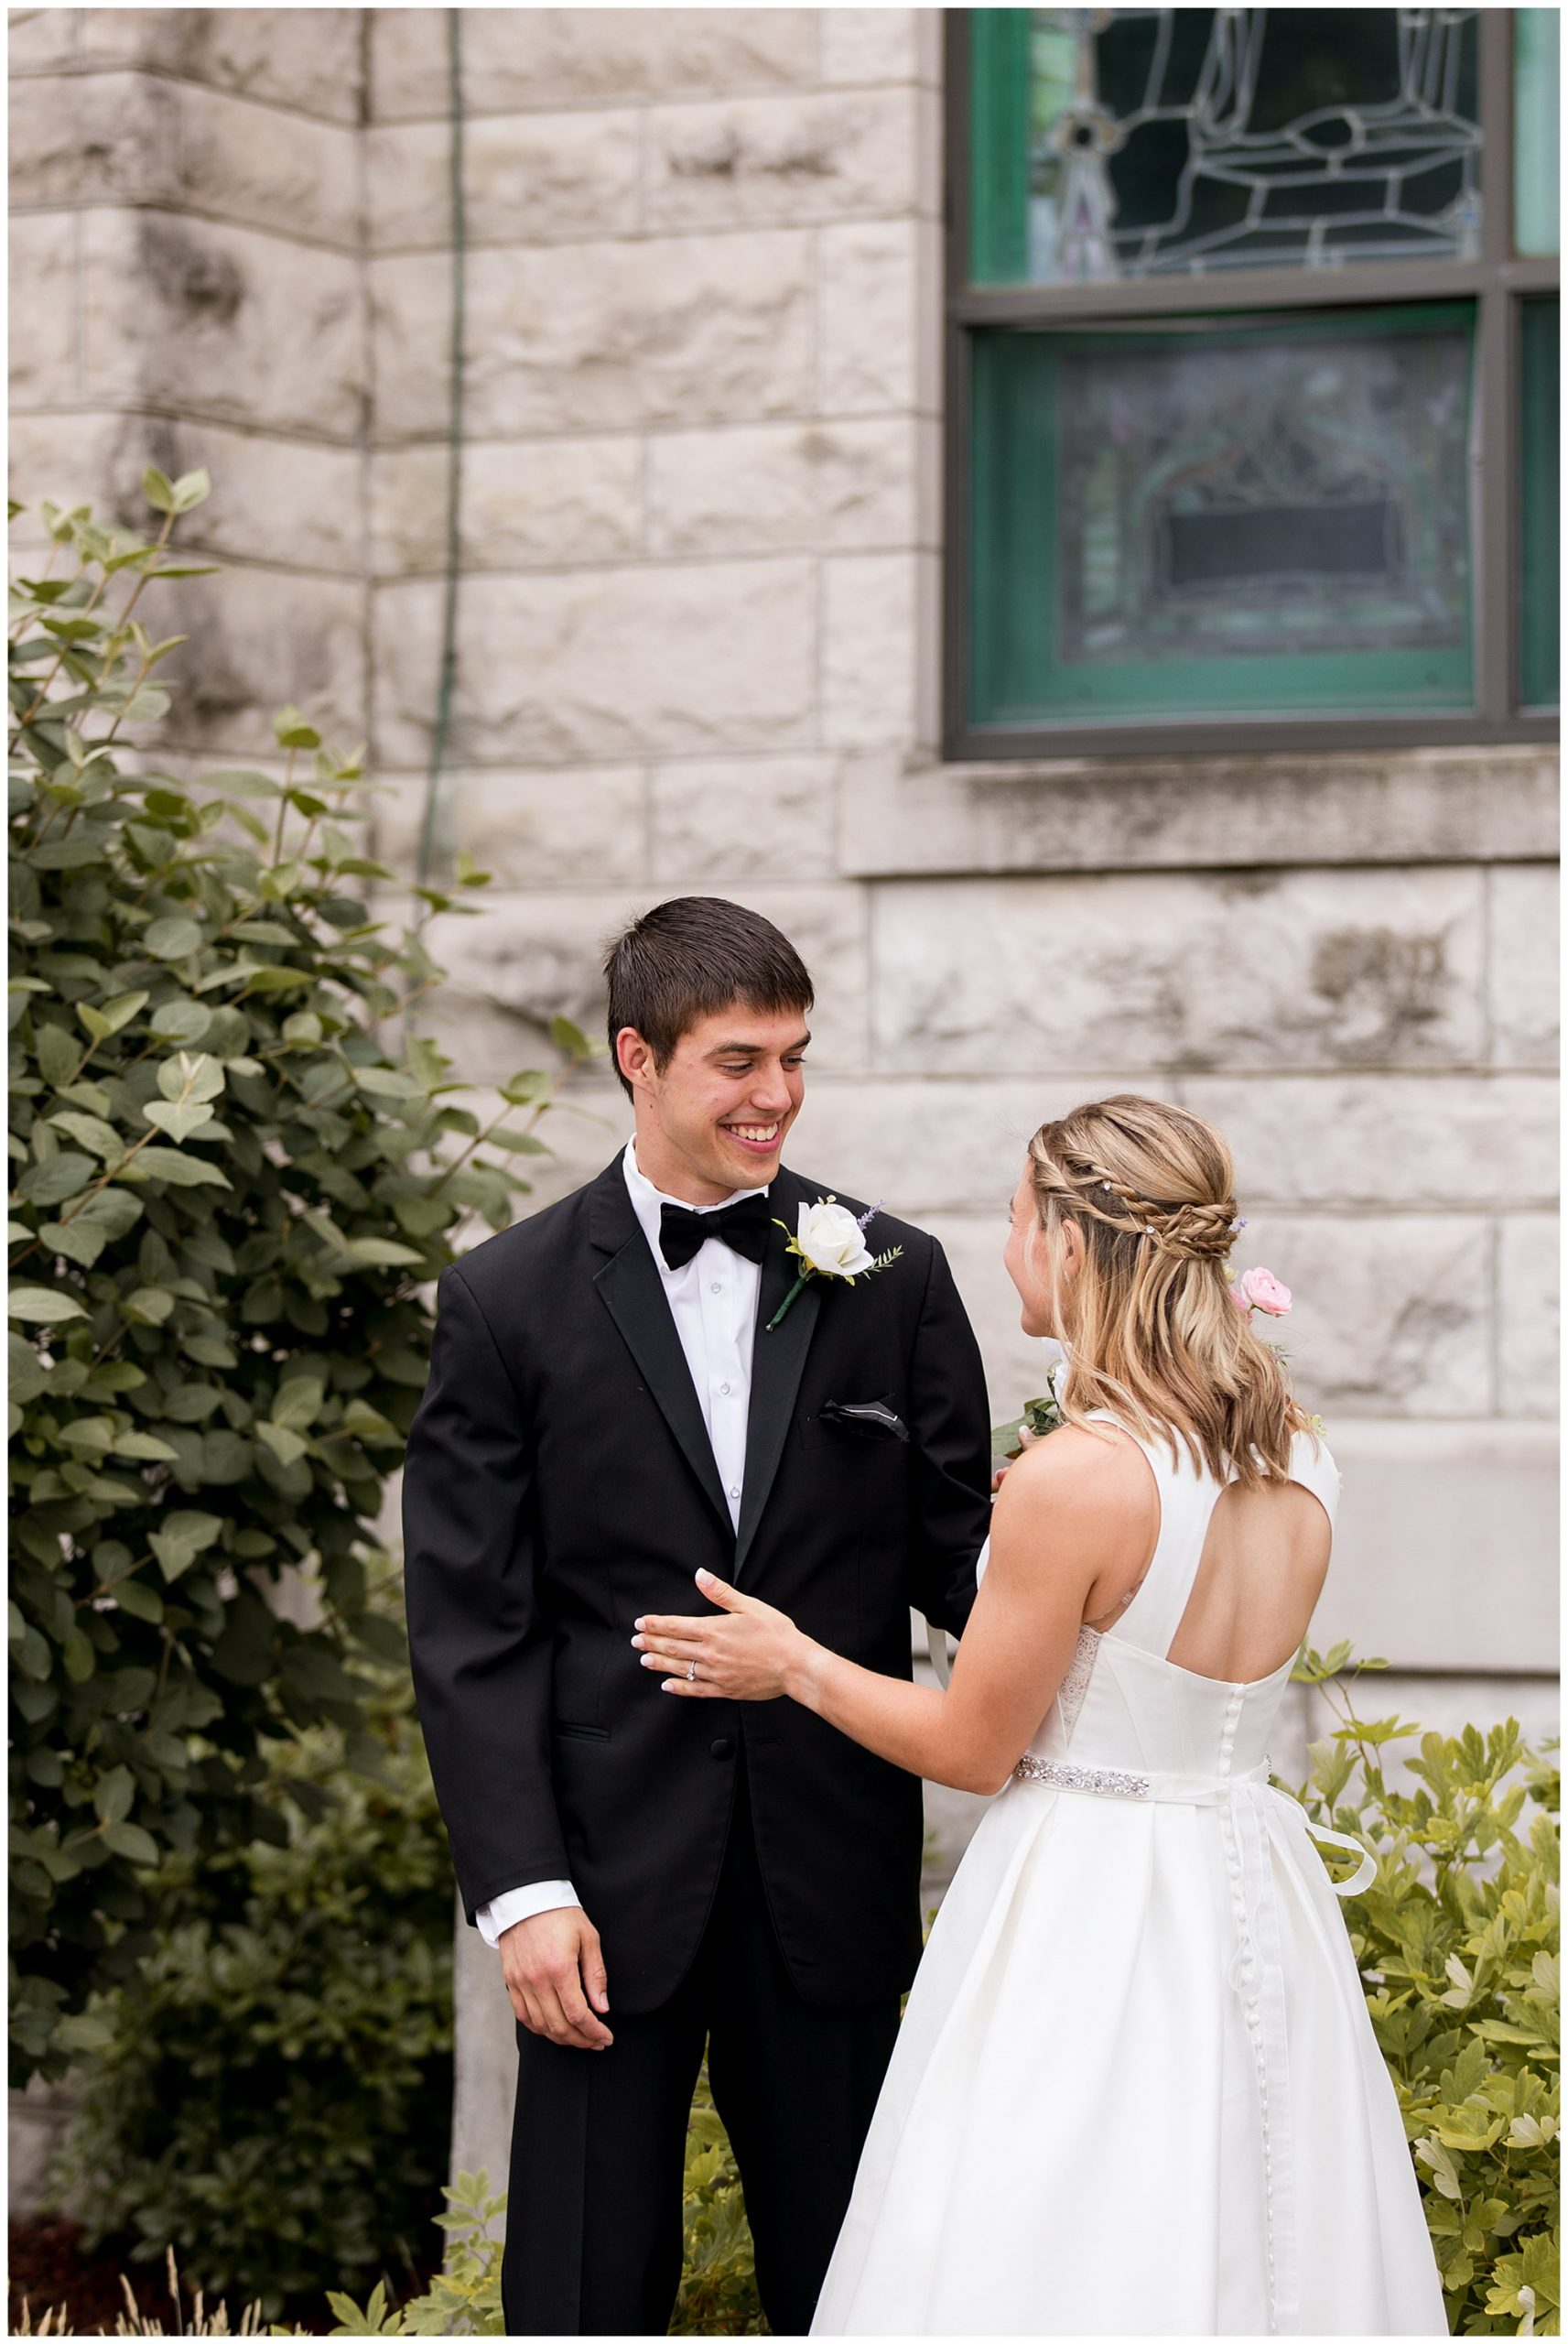 bride and groom first look in rosary garden at St. Patrick Church in Kokomo Indiana